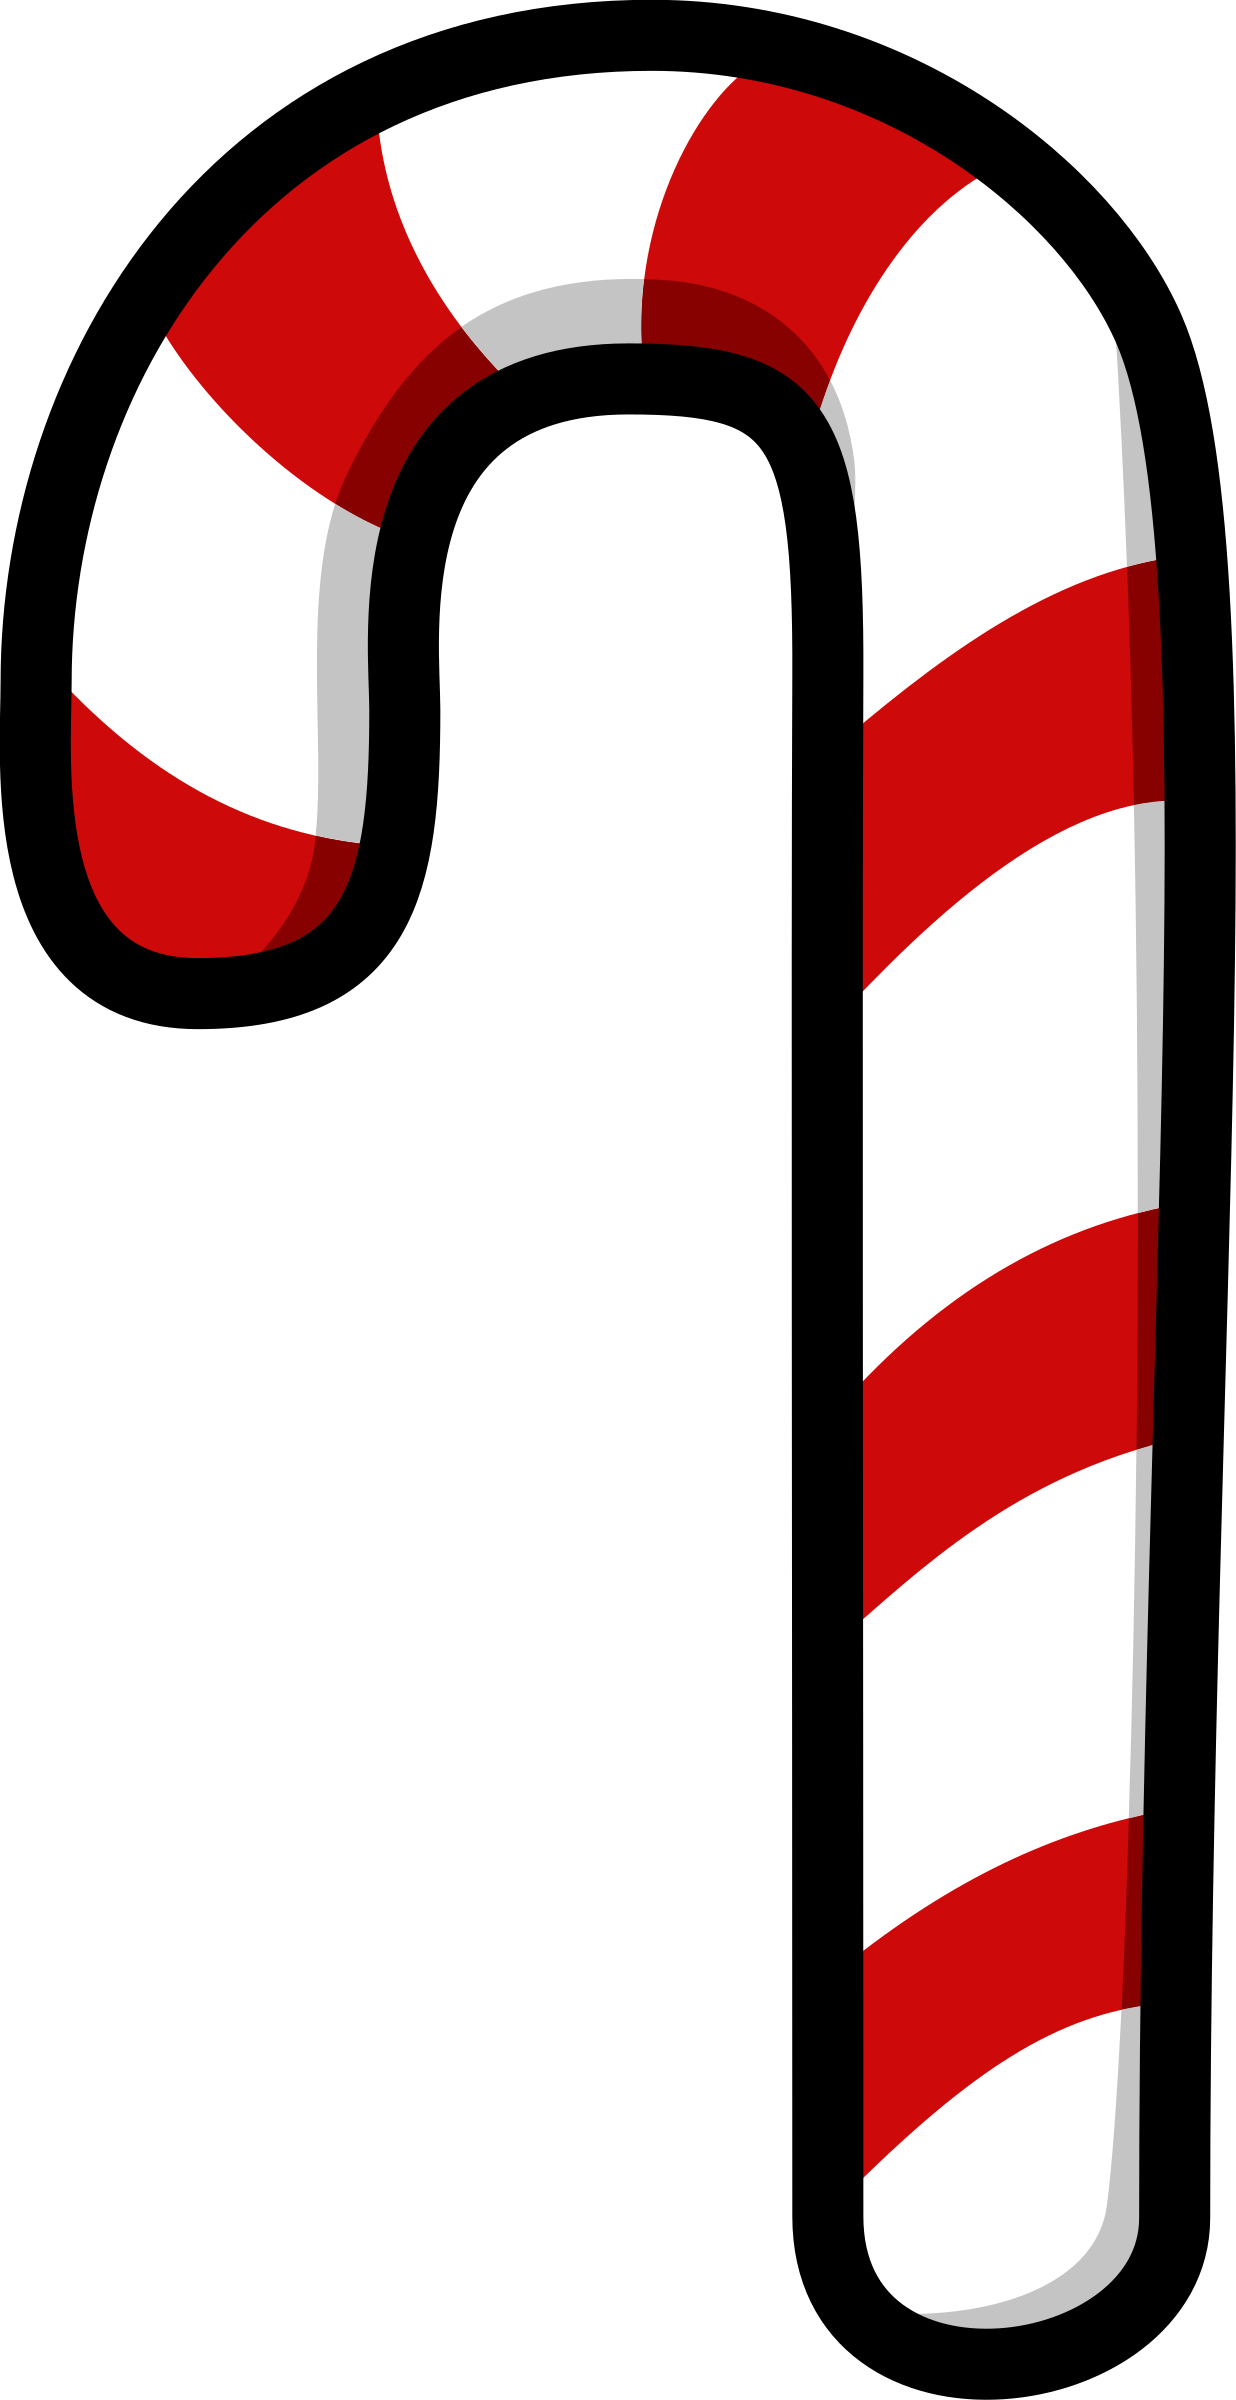 Candy Cane Clipart Png.